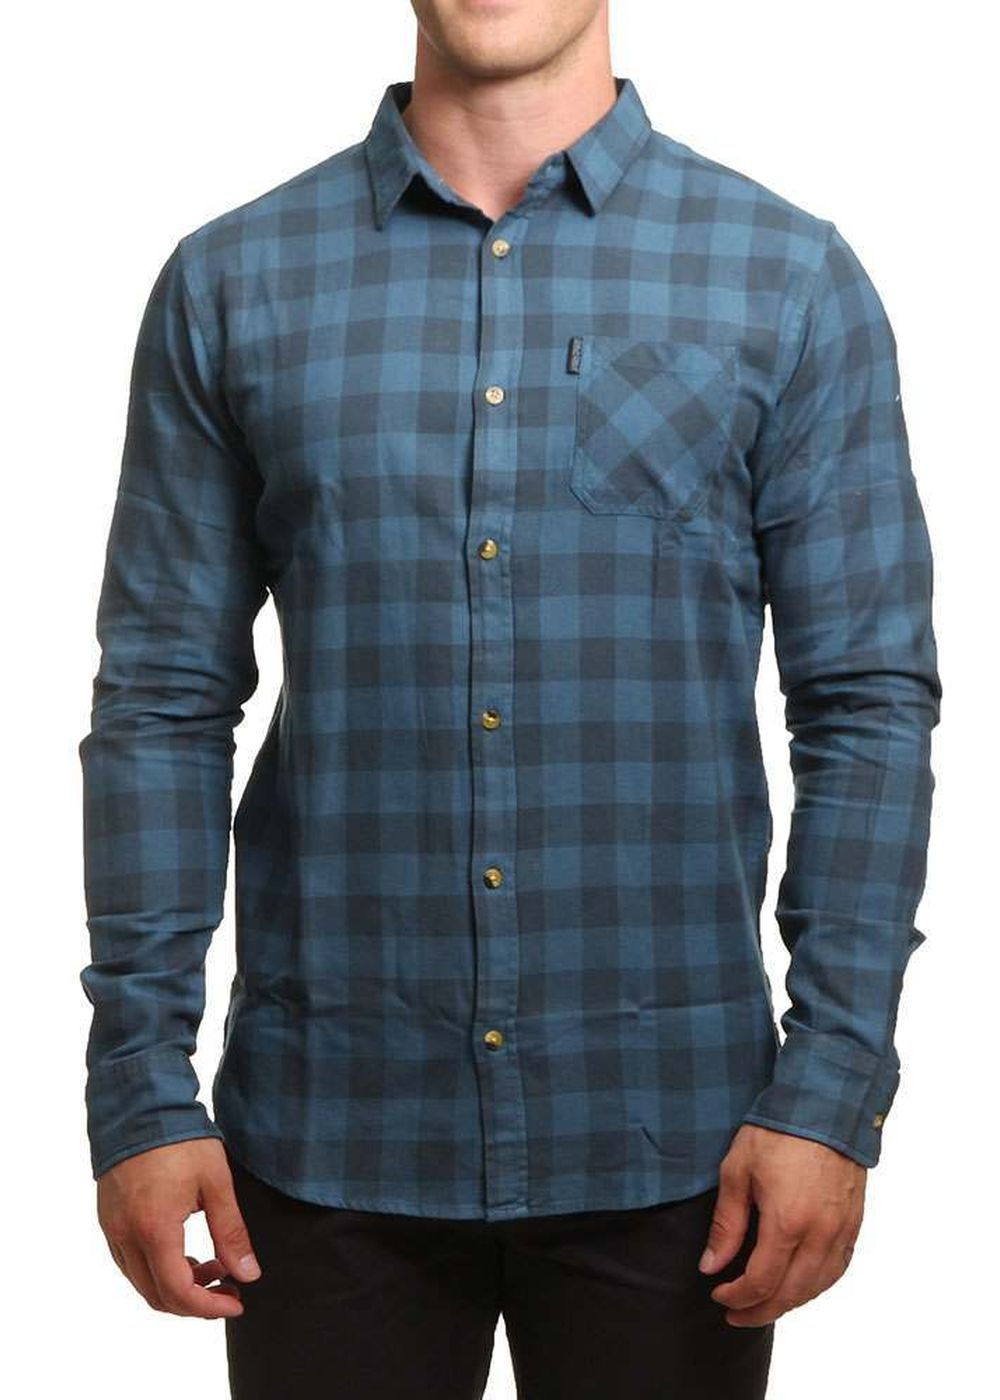 ripcurl-check-shirt-indian-teal